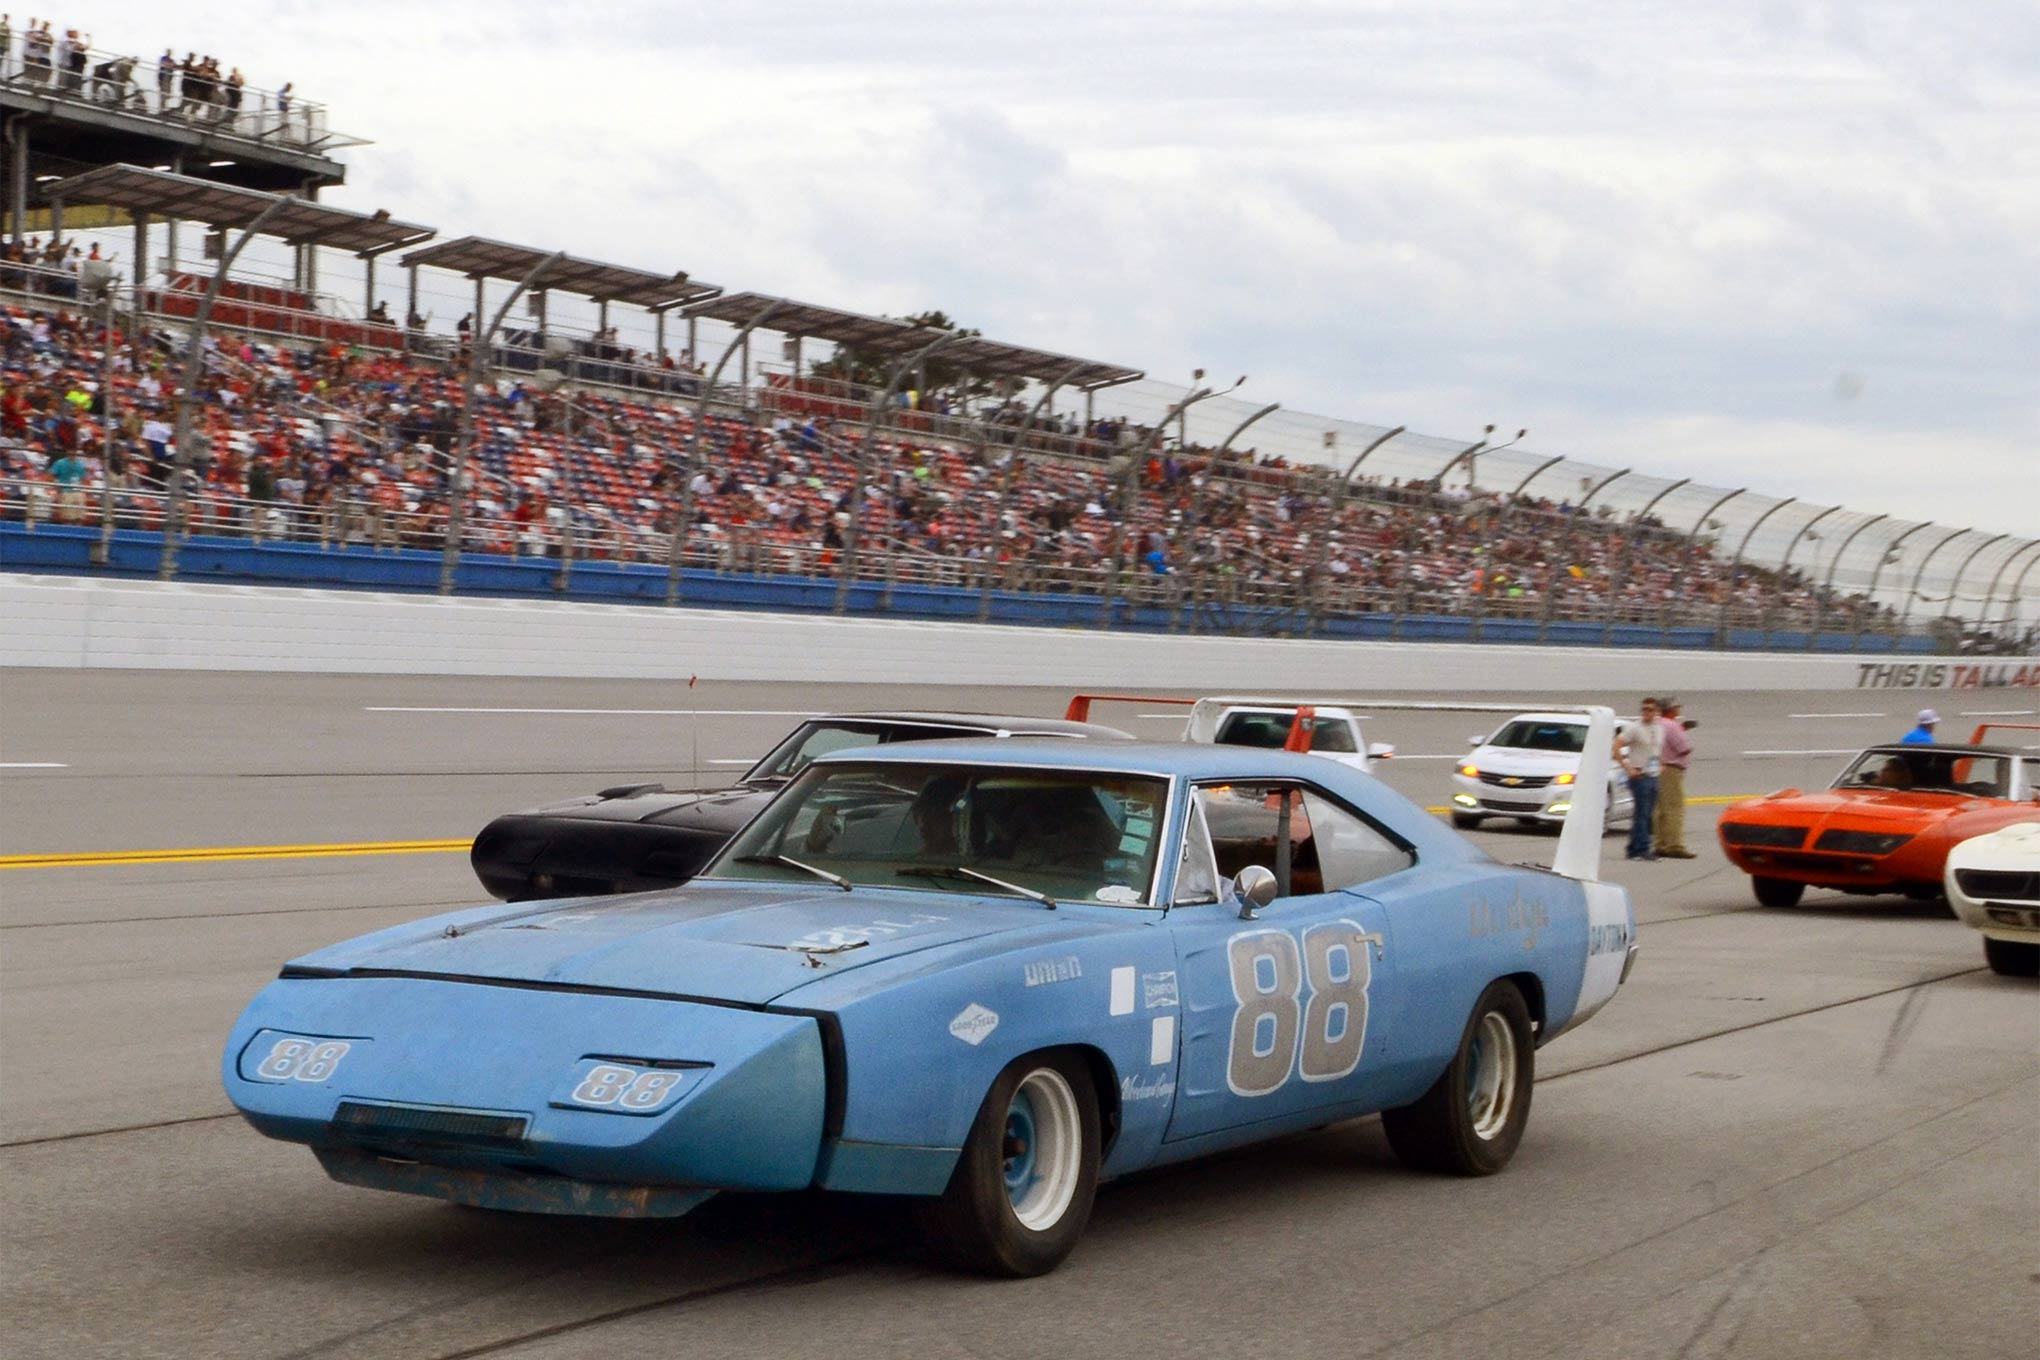 The 200-mph No. 88 engineering car was later used for racing, and a very nice replacement was later created by Chrysler for display. This version is a well-worn street car that actually looks very old school—a sort of wing-car rat rod.